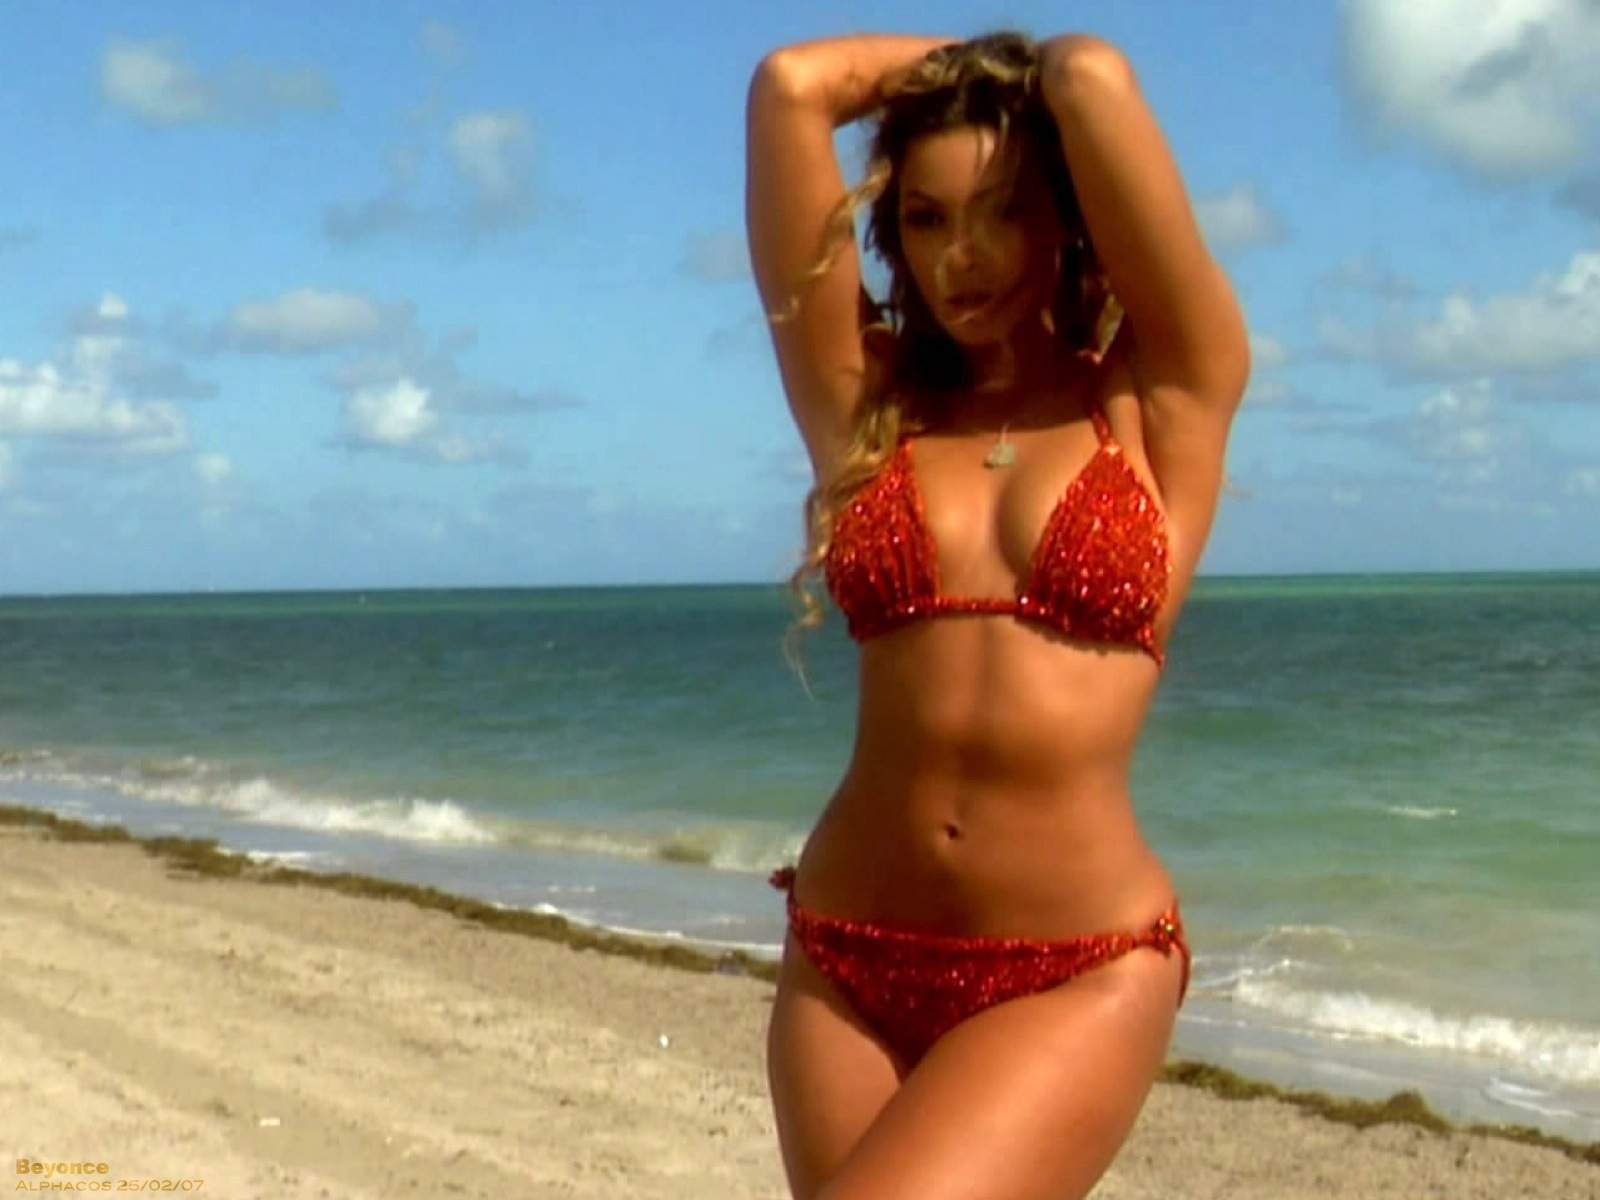 beyonce bikini photo jpg 1152x768